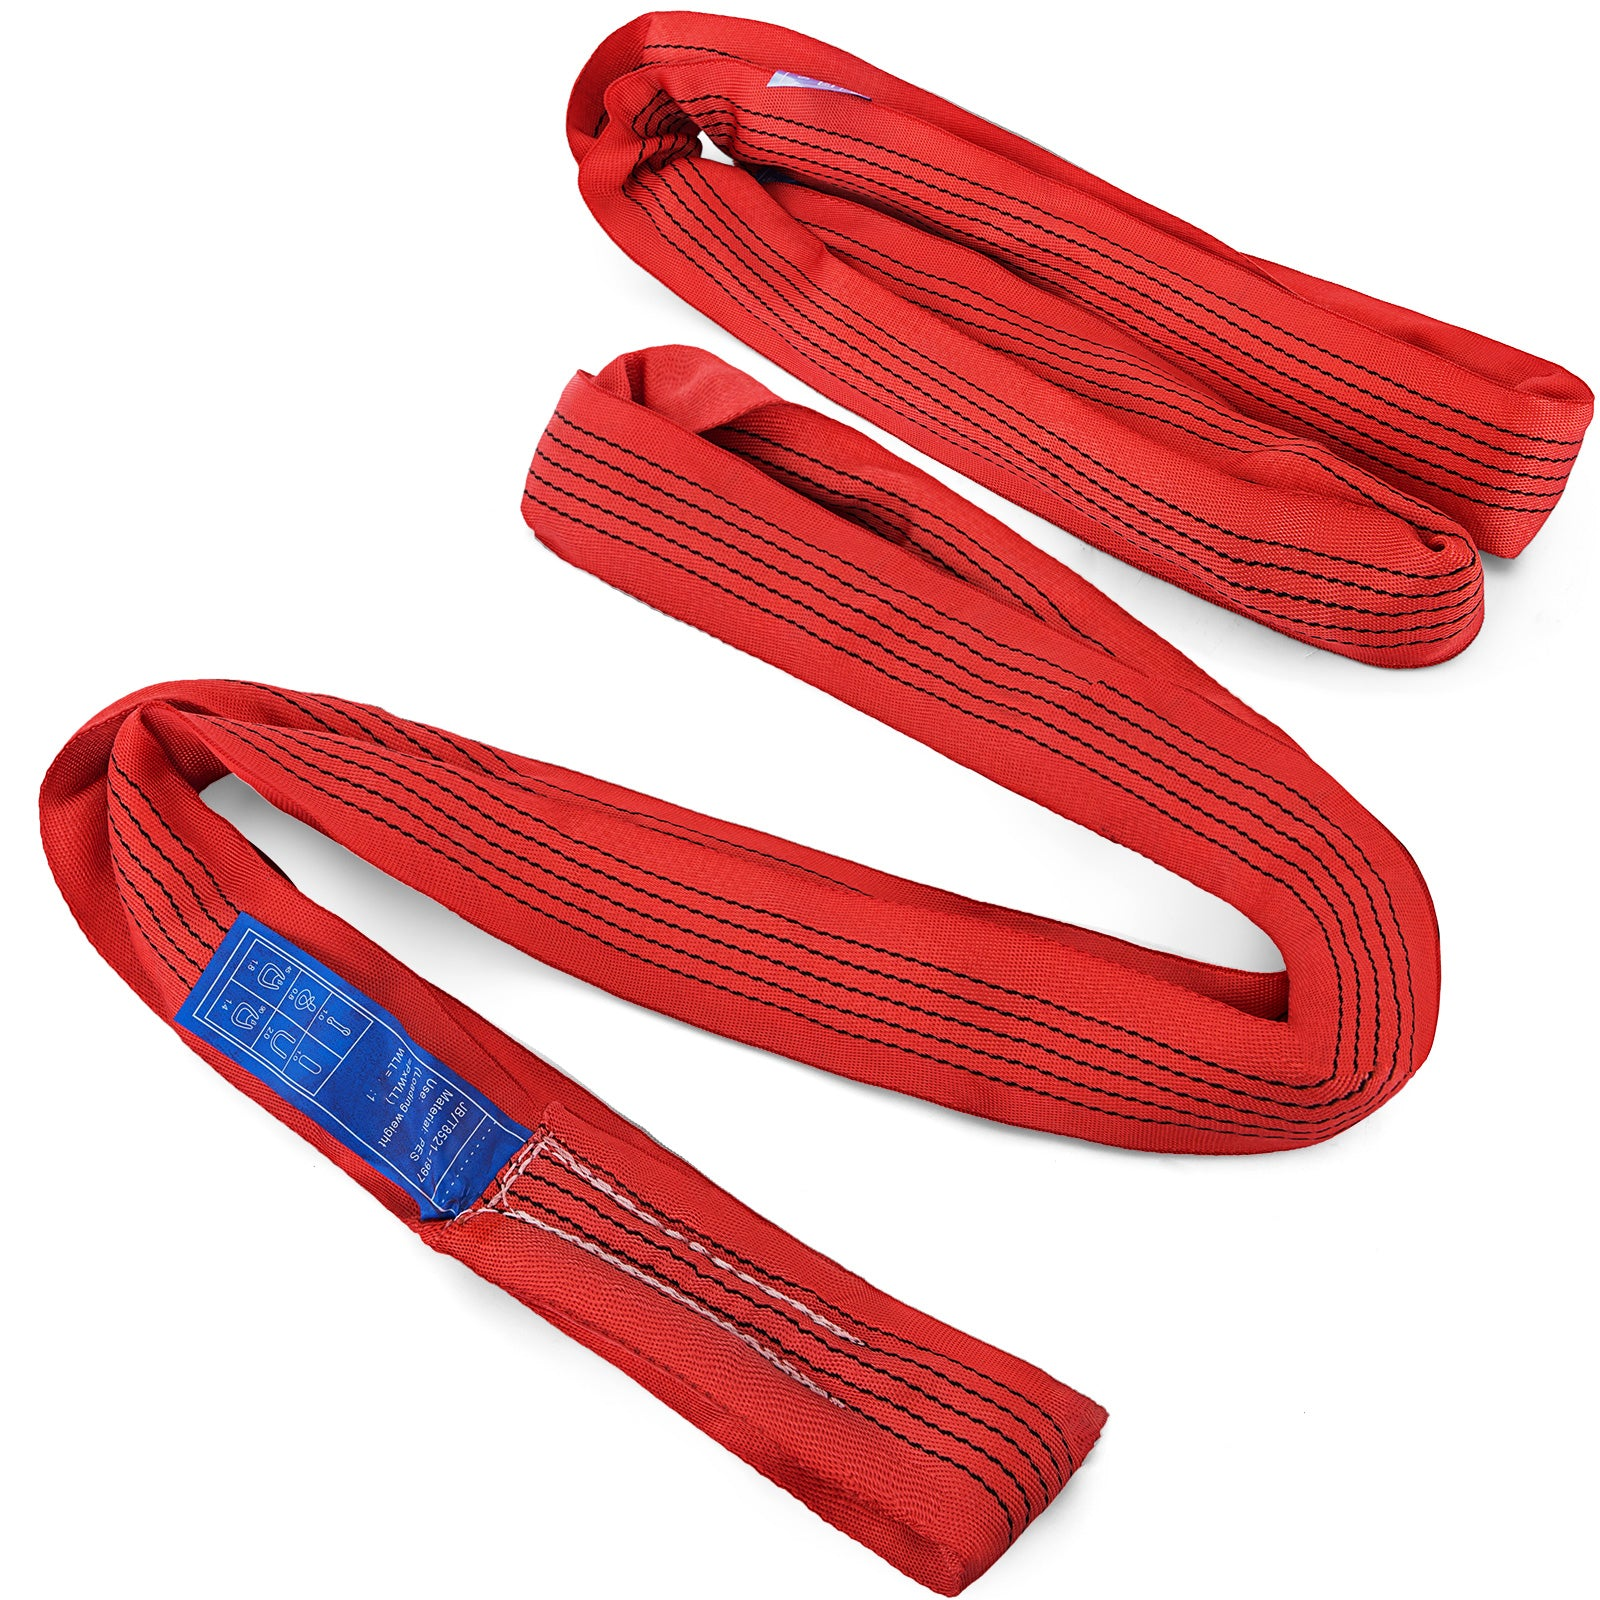 15ft Endless Round Lifting Sling 5t/11000lbs Anti- Corrosion Stable